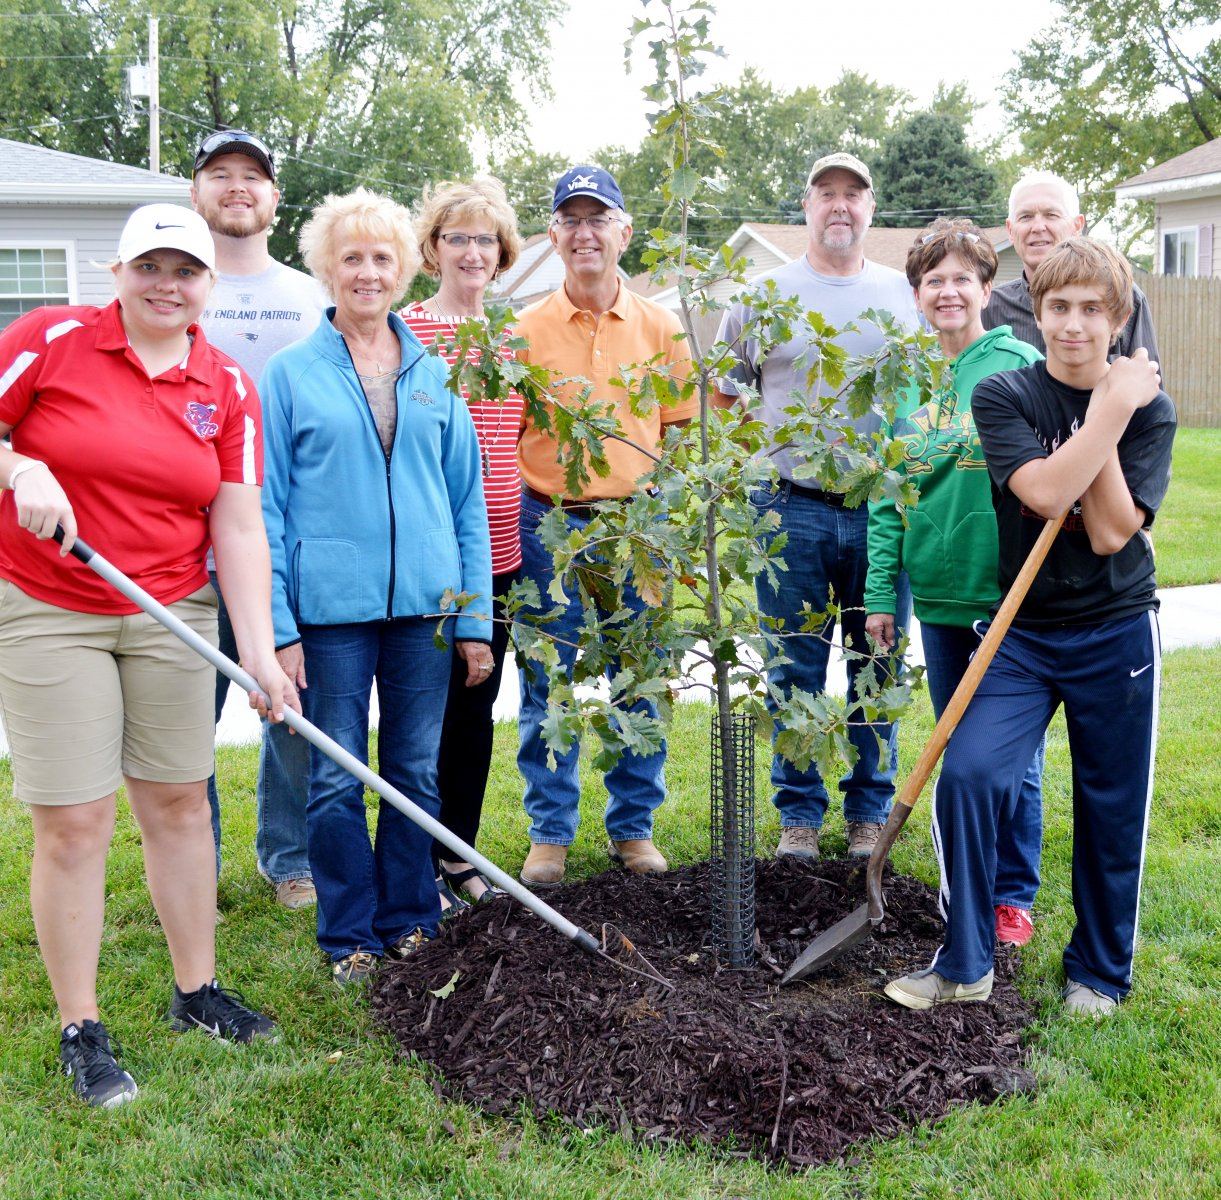 Tree planters band together in Pender, Nebraska